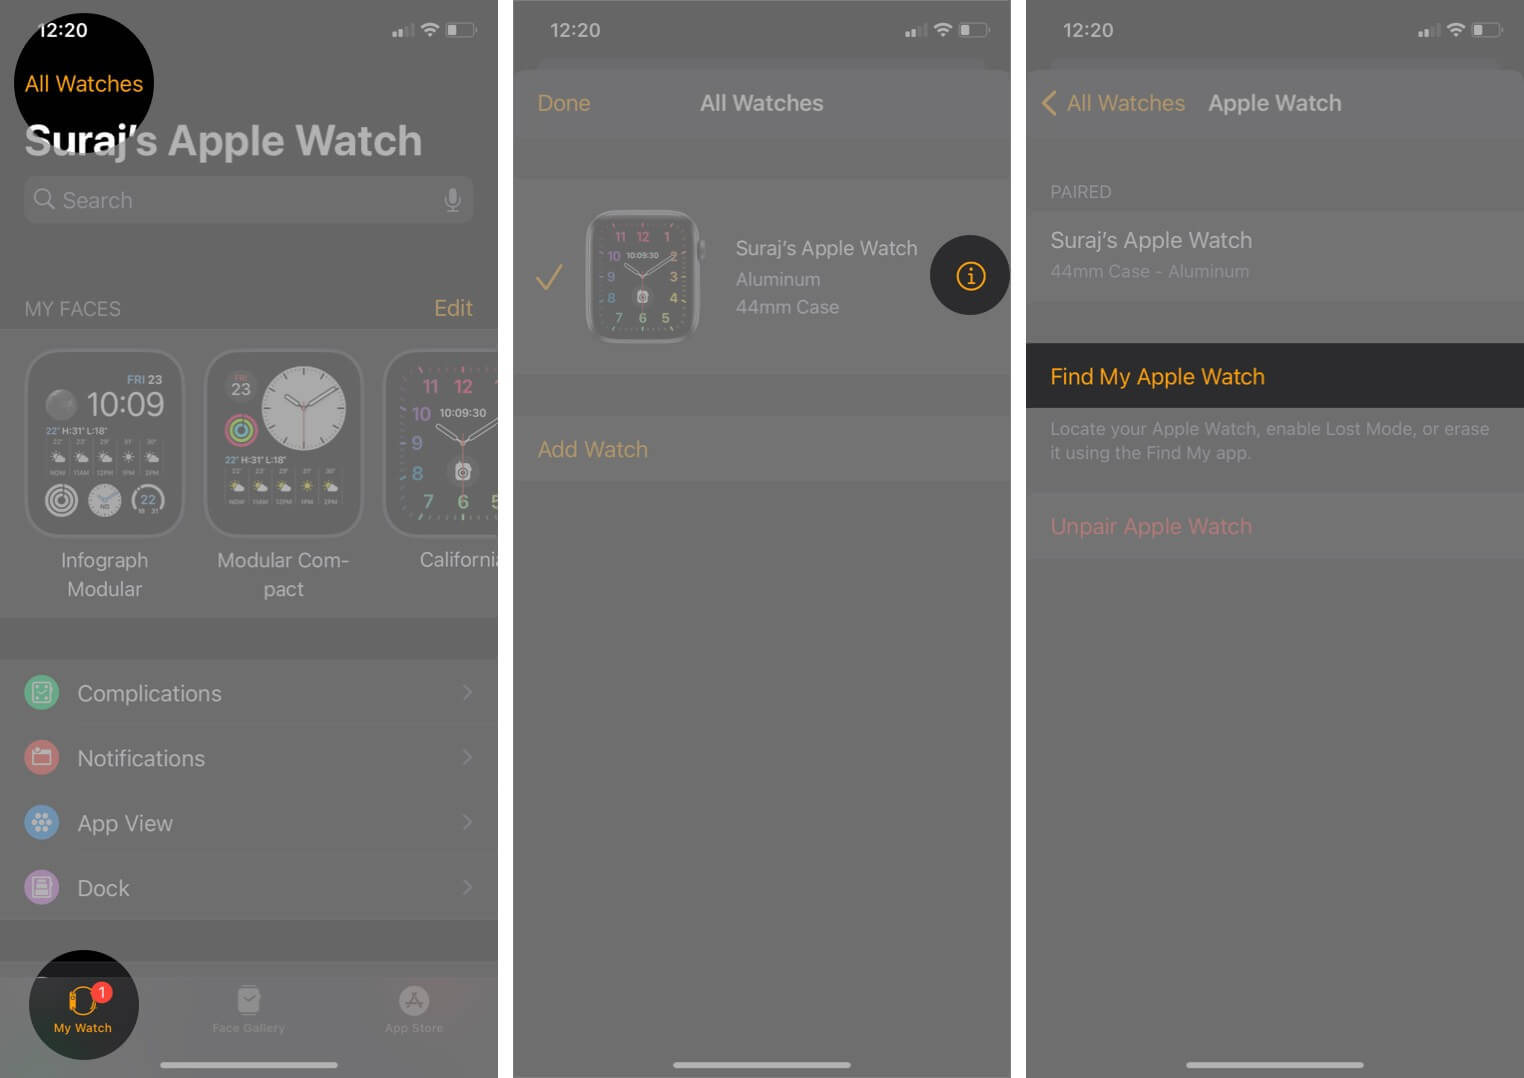 check apple watch activation lock is enabled or not using watch app on paired iphone